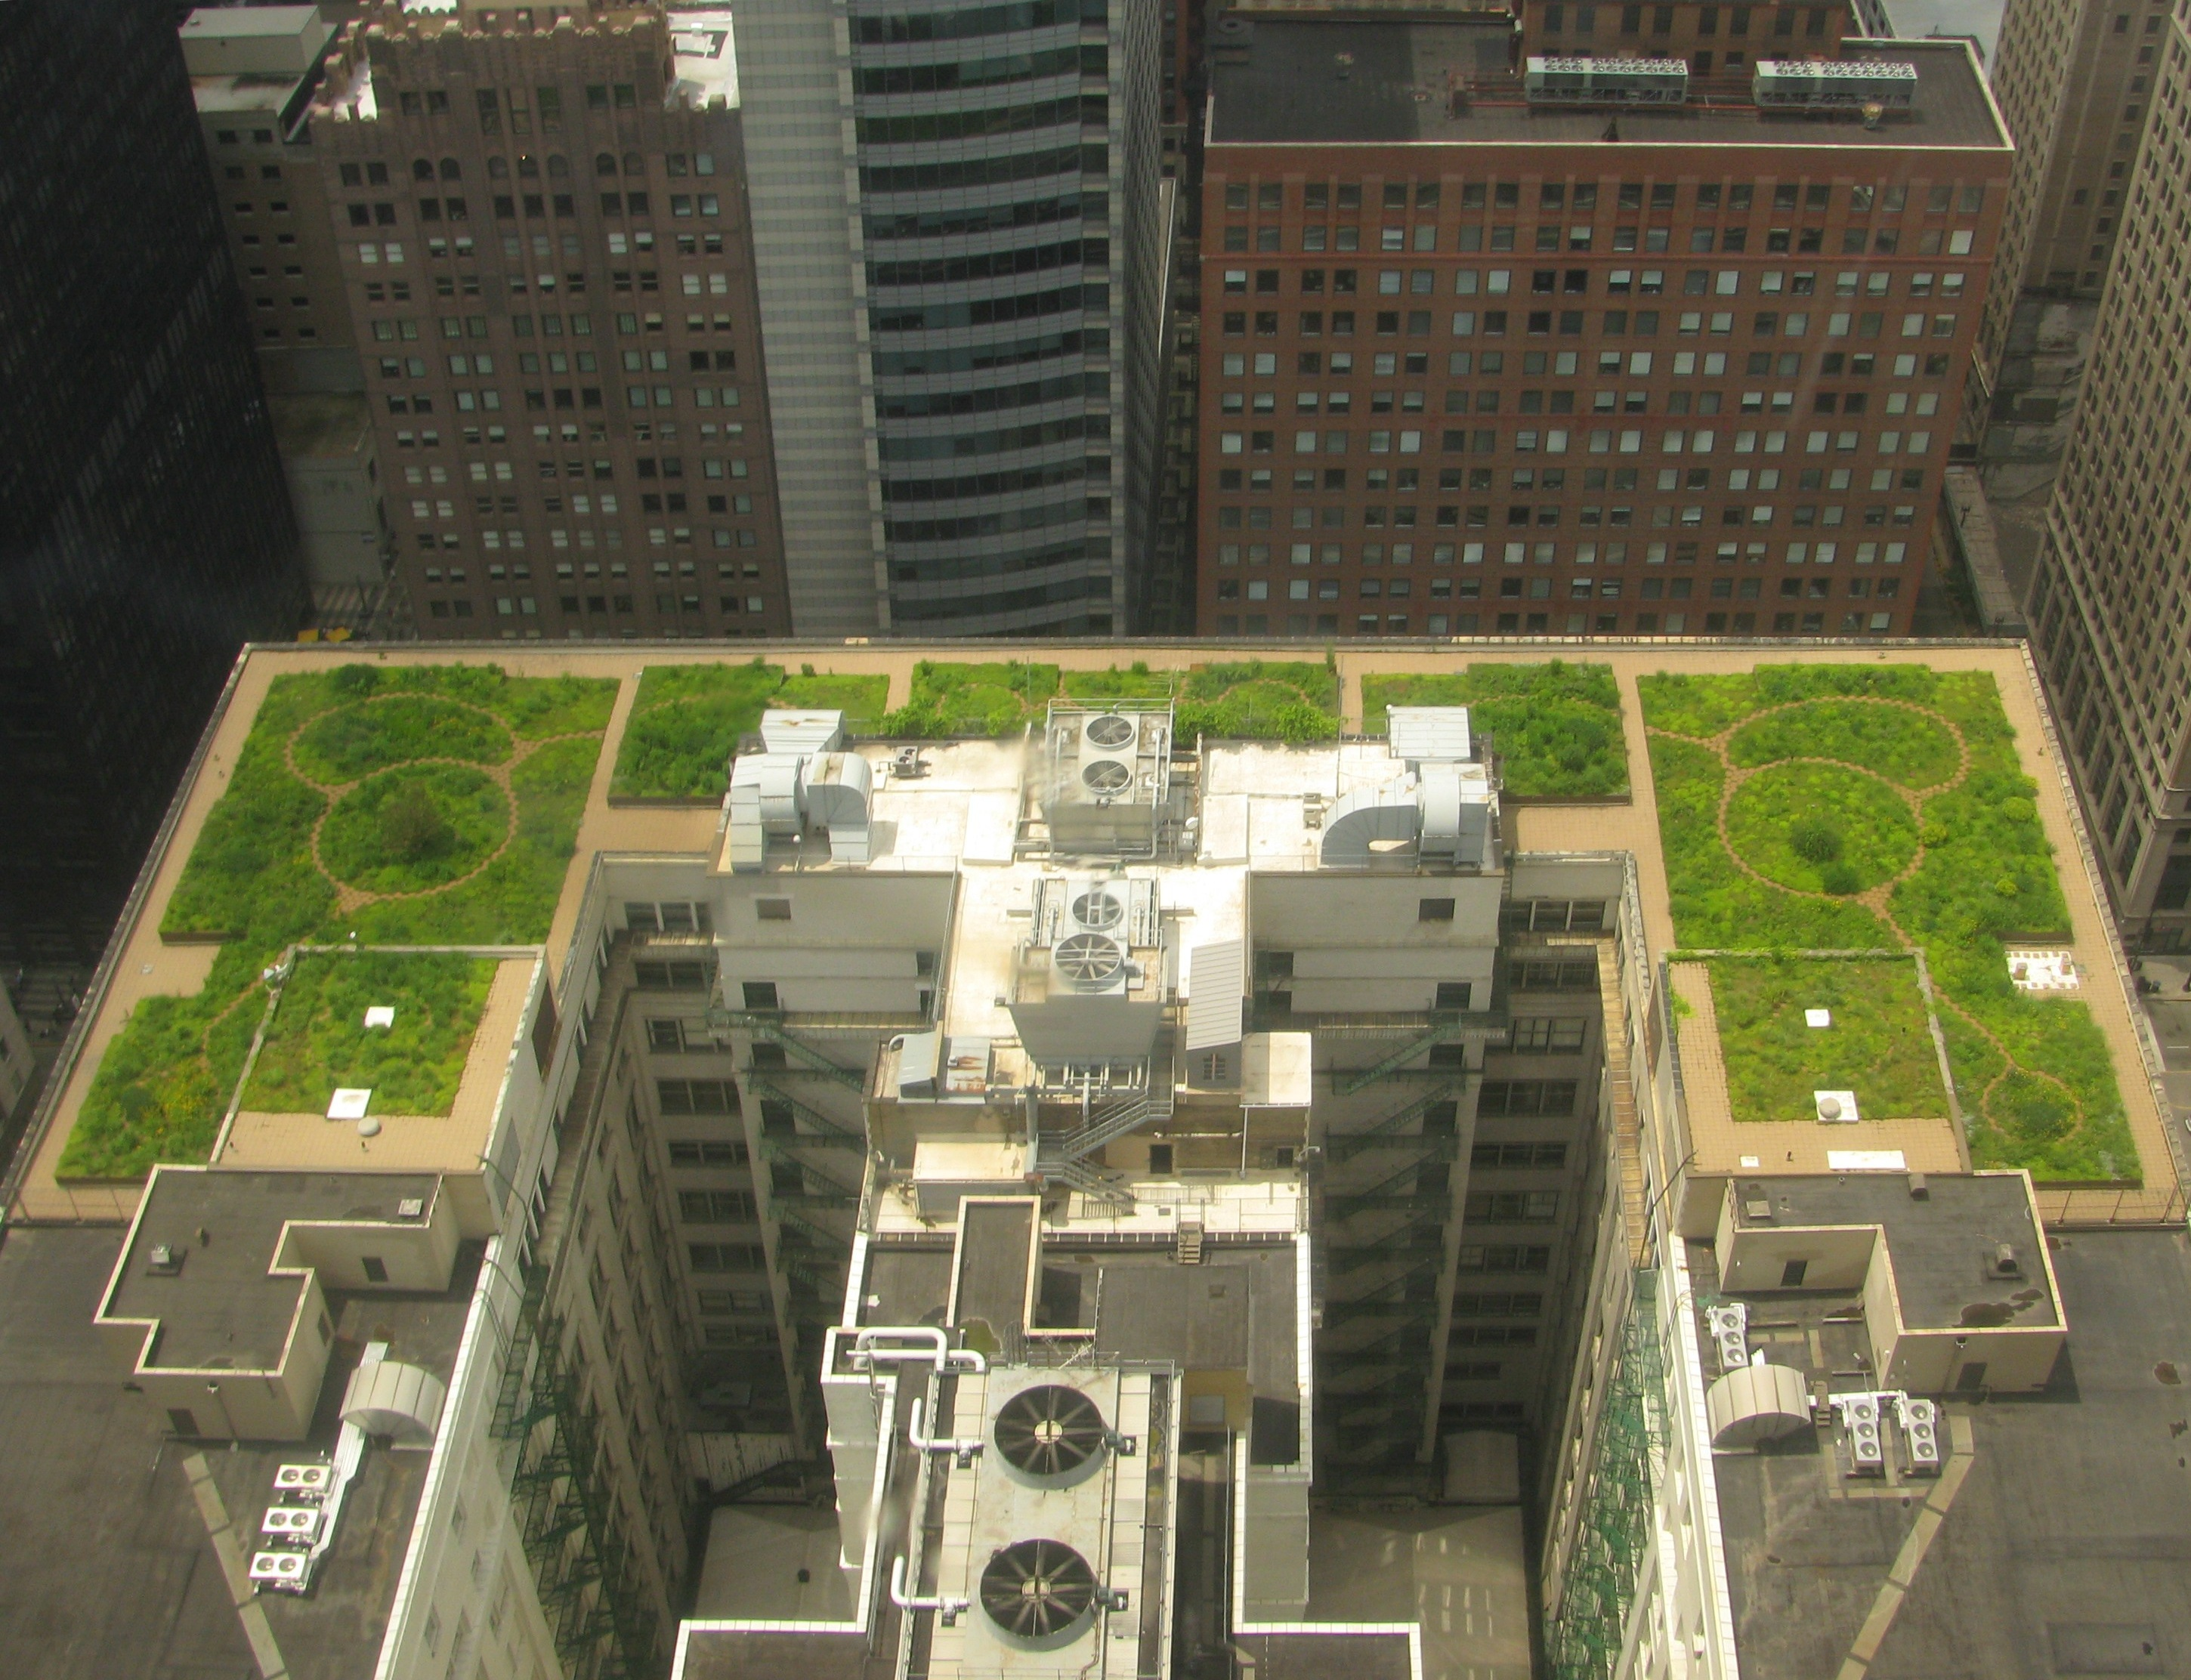 Wikipedia:Valued picture candidates/Chicago City Hall Green Roof ...